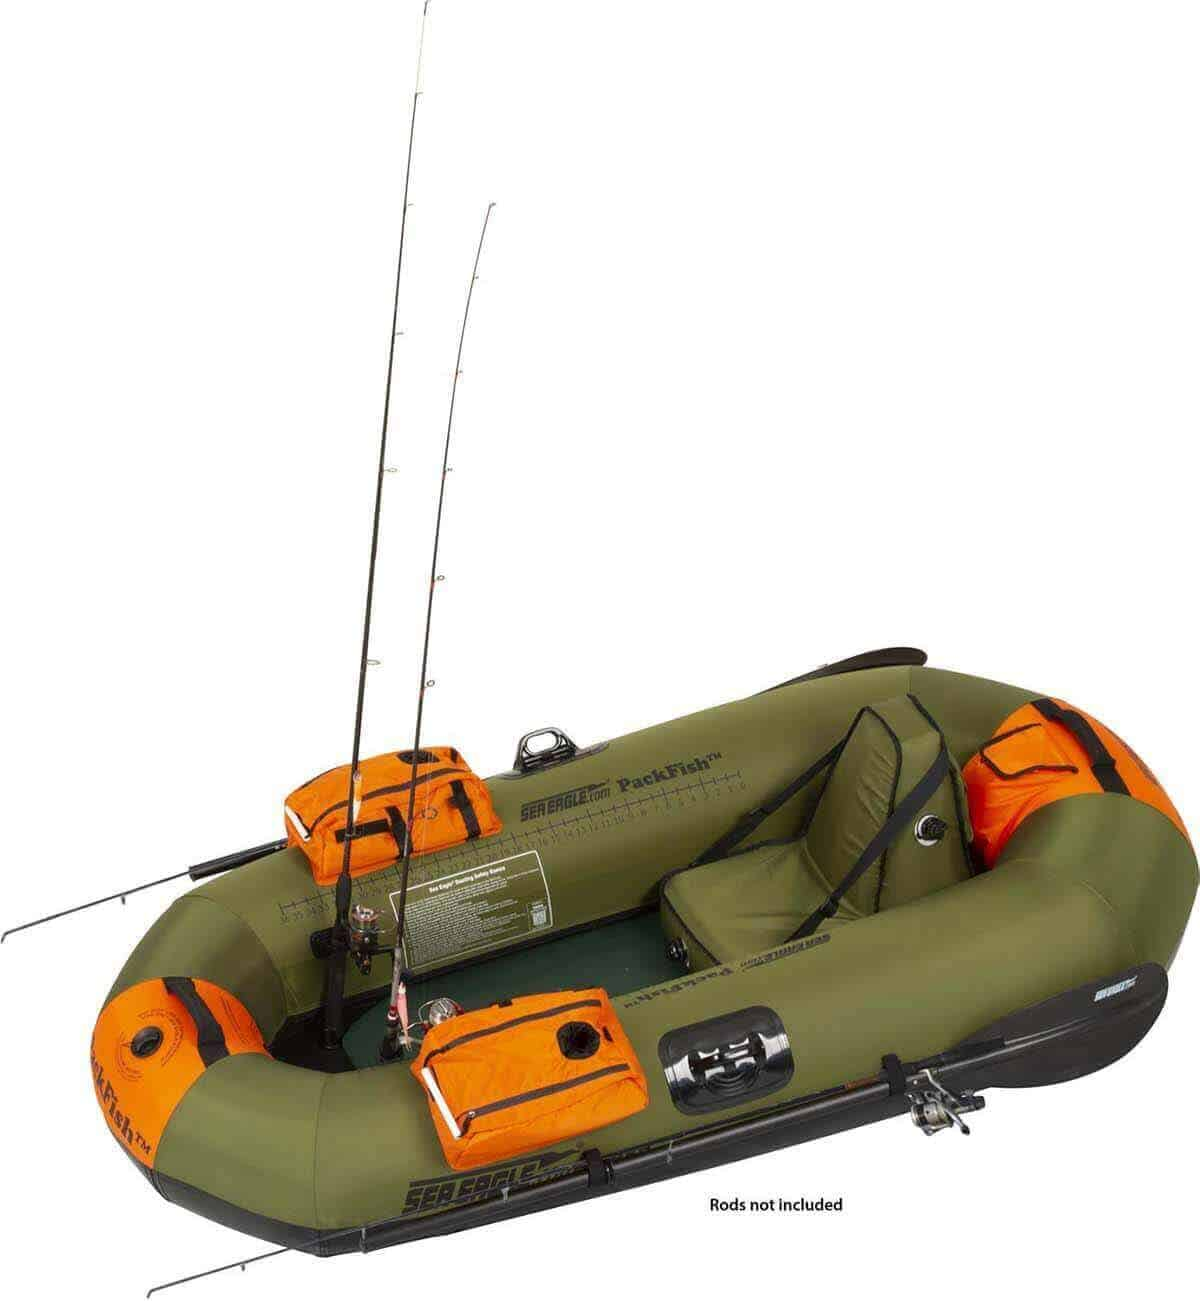 The Sea Eagle PackFish7 Inflatable Frameless Fishing Boat has two built-in industrial-strength rod holders.